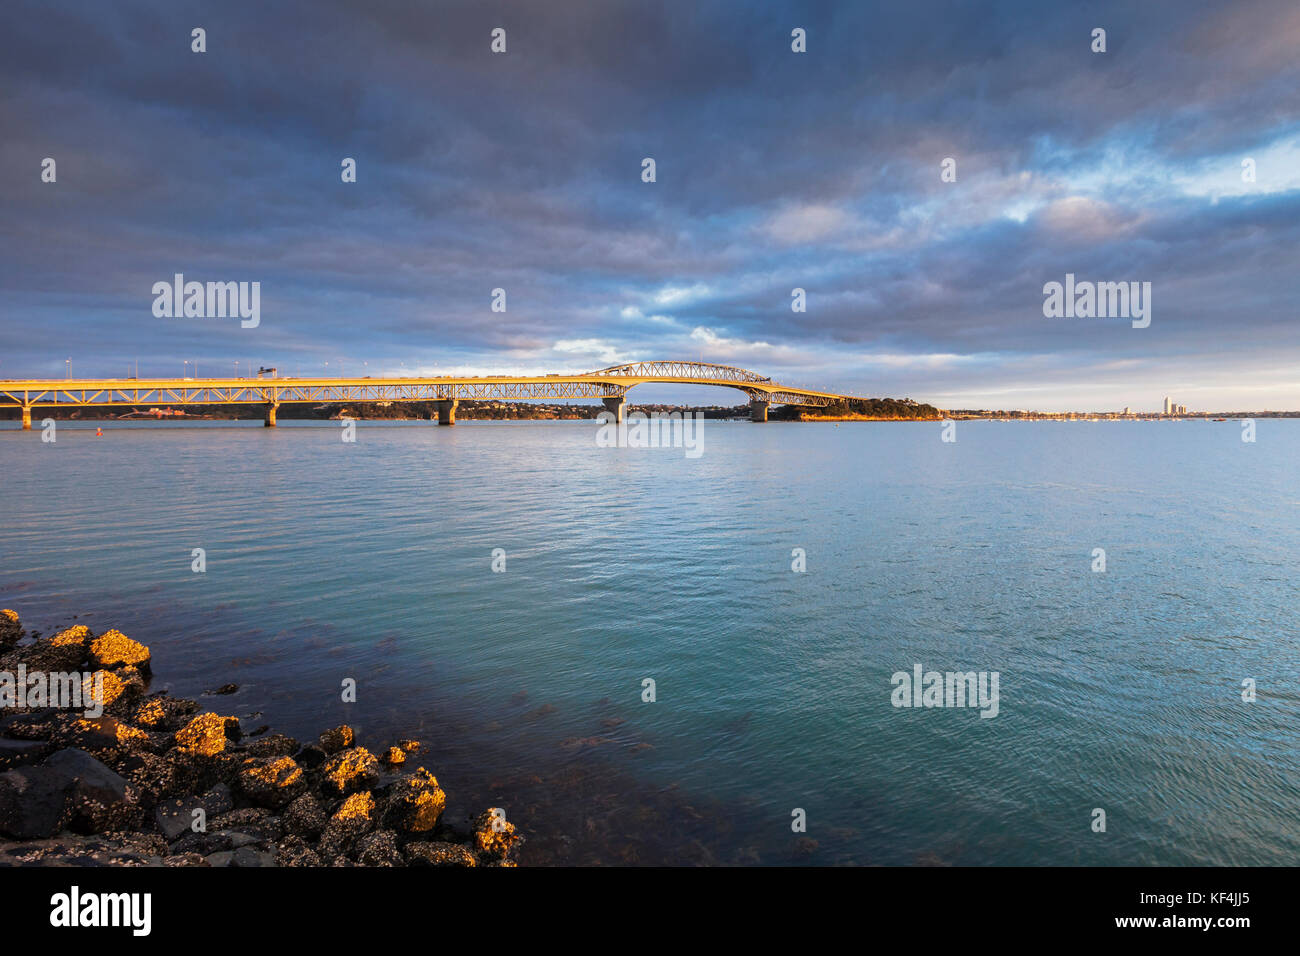 Auckland Harbour Bridge at sunrise under a dramatic moody sky. - Stock Image